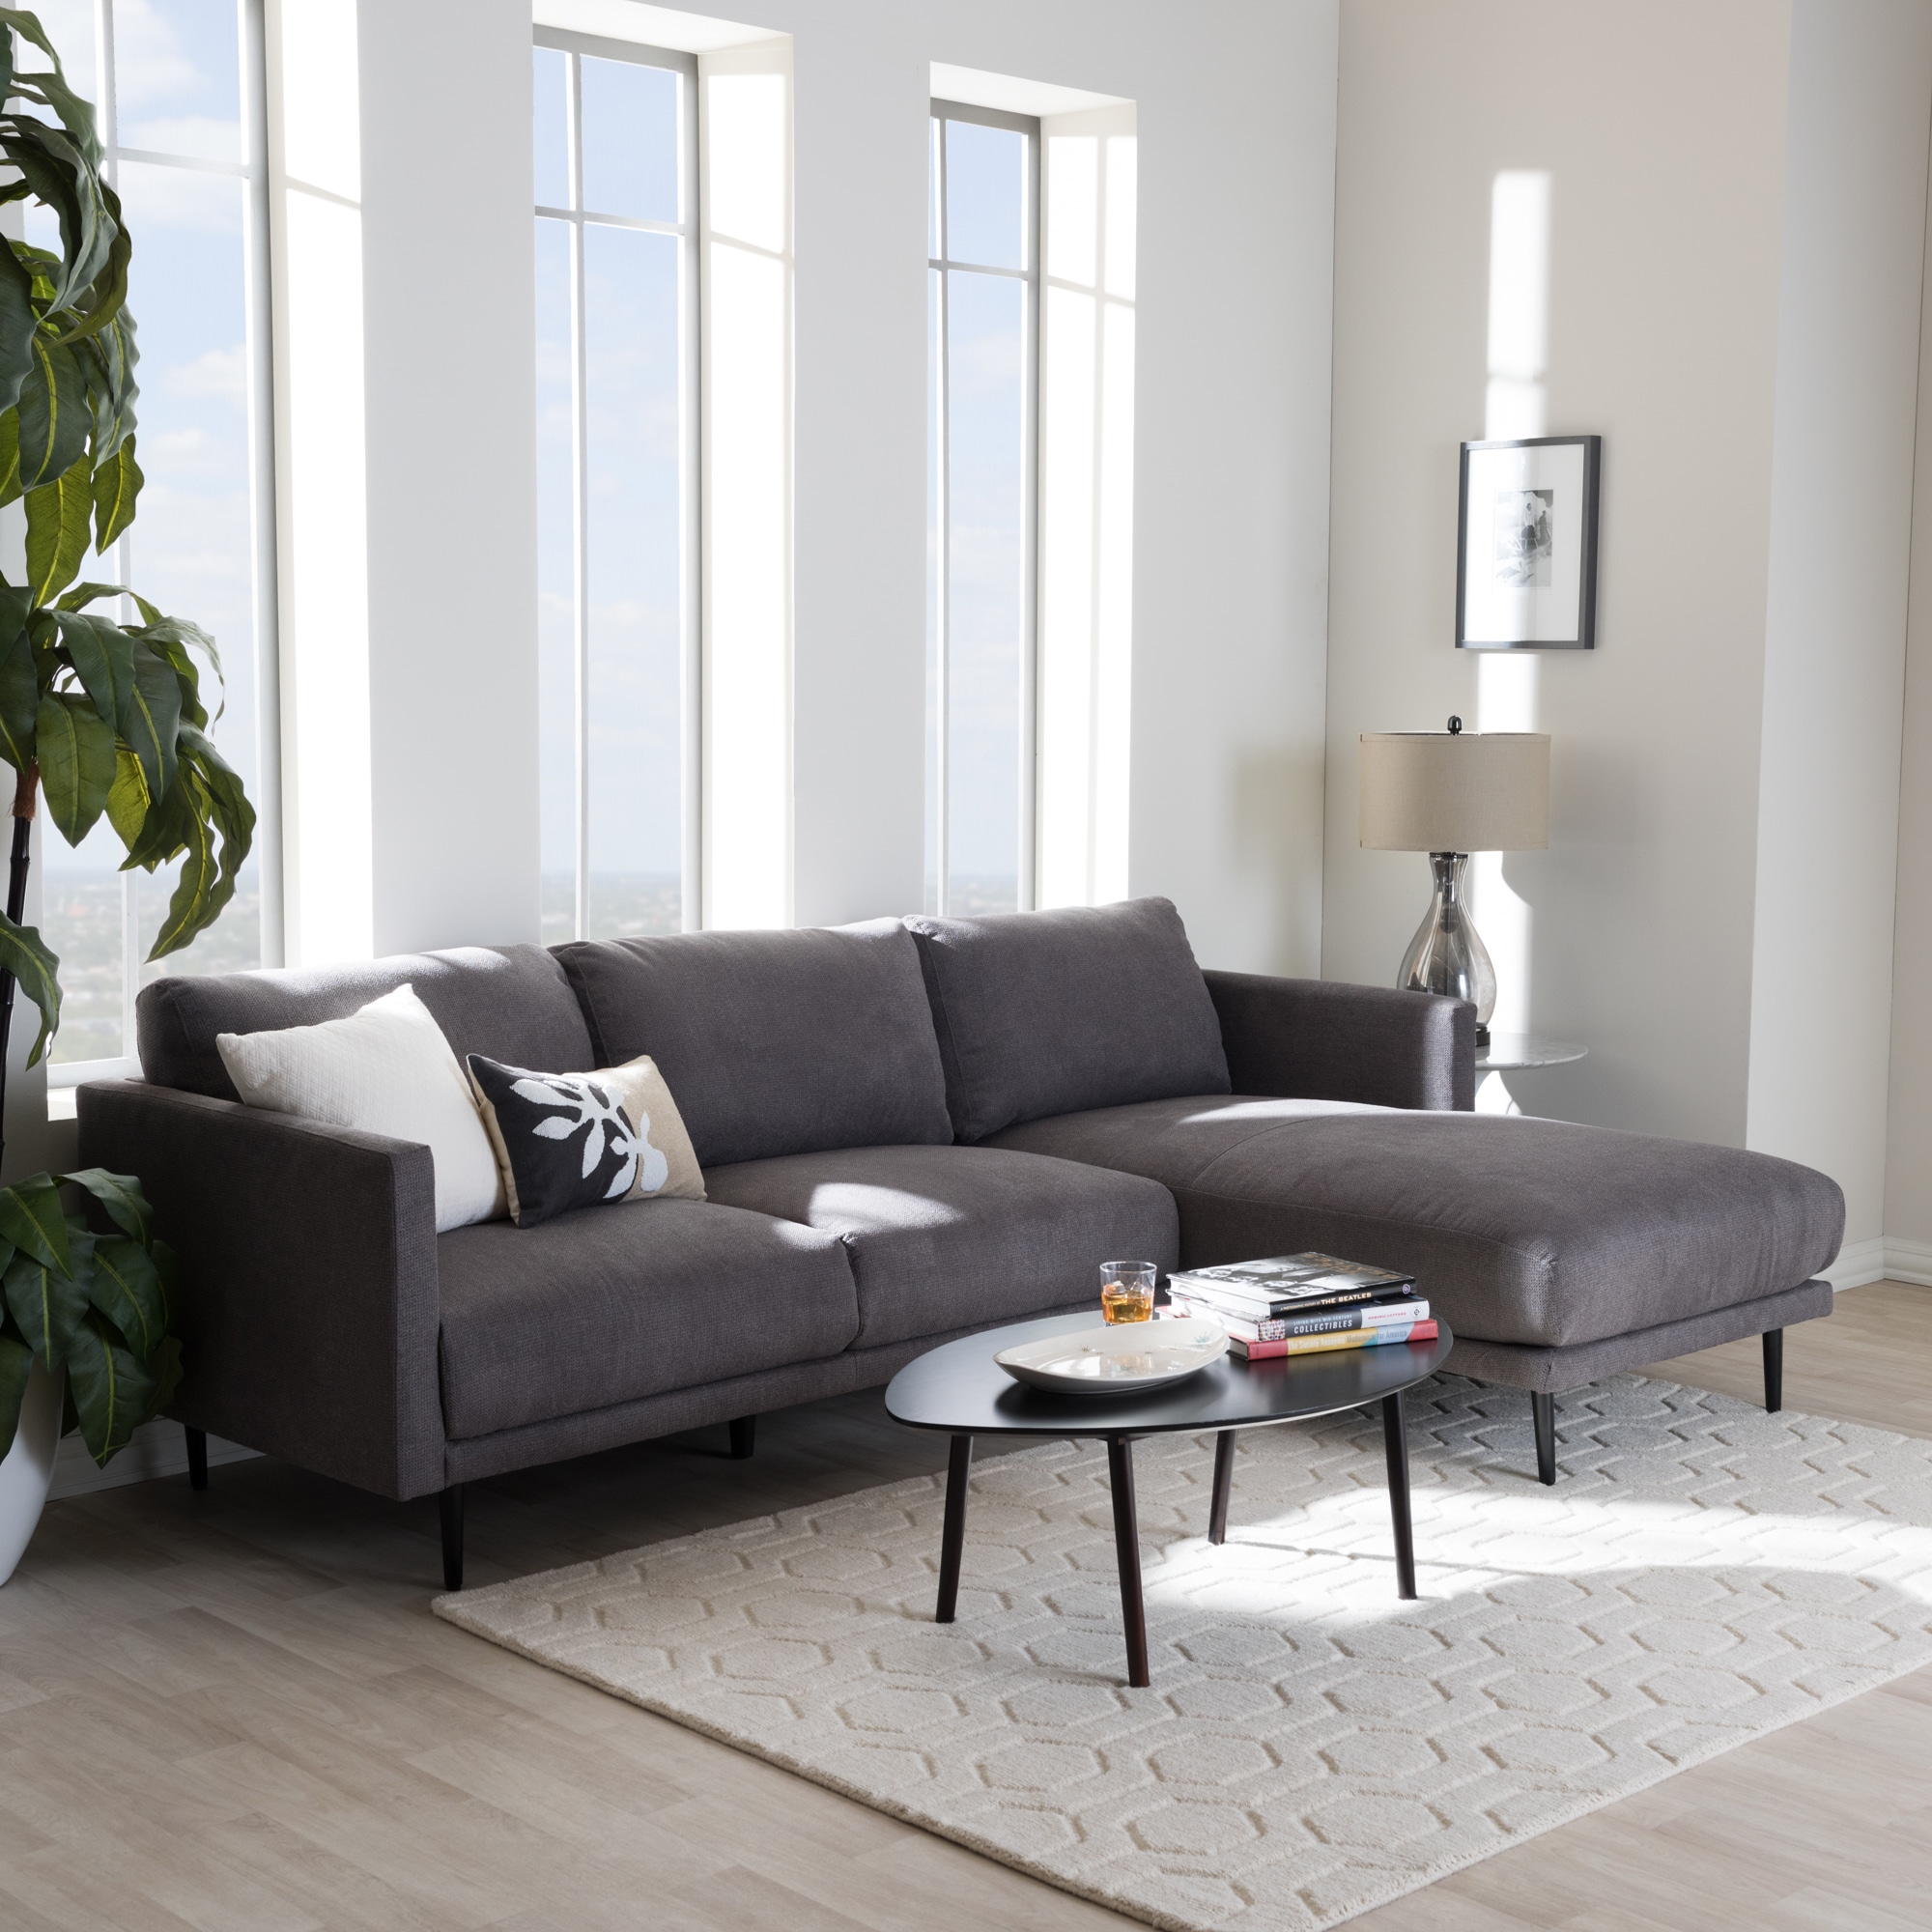 Baxton Studio Ptolema Mid Century Modern Grey Upholstered Sectional Sofa